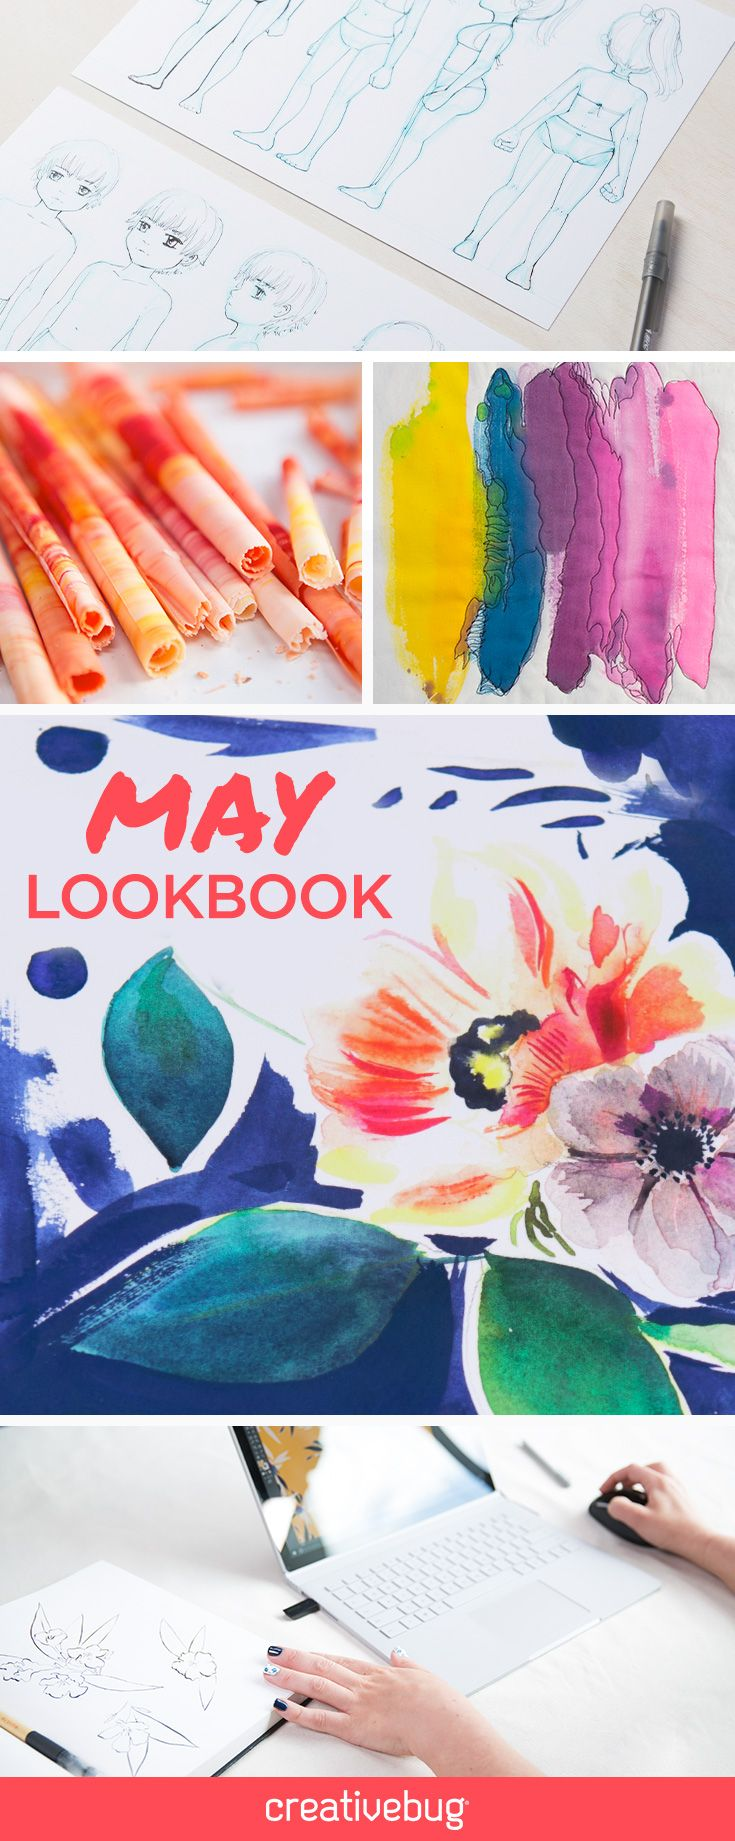 May is so much more than spring flowers. This month, we're embracing mottled watercolor vibes and big bold prints. We're paying special attention to the human form via draping classes for sewists and figure-drawing classes for artists. No matter your muse, kick your spring inspiration into high gear with this mix of brand new classes and Creativebug classics.